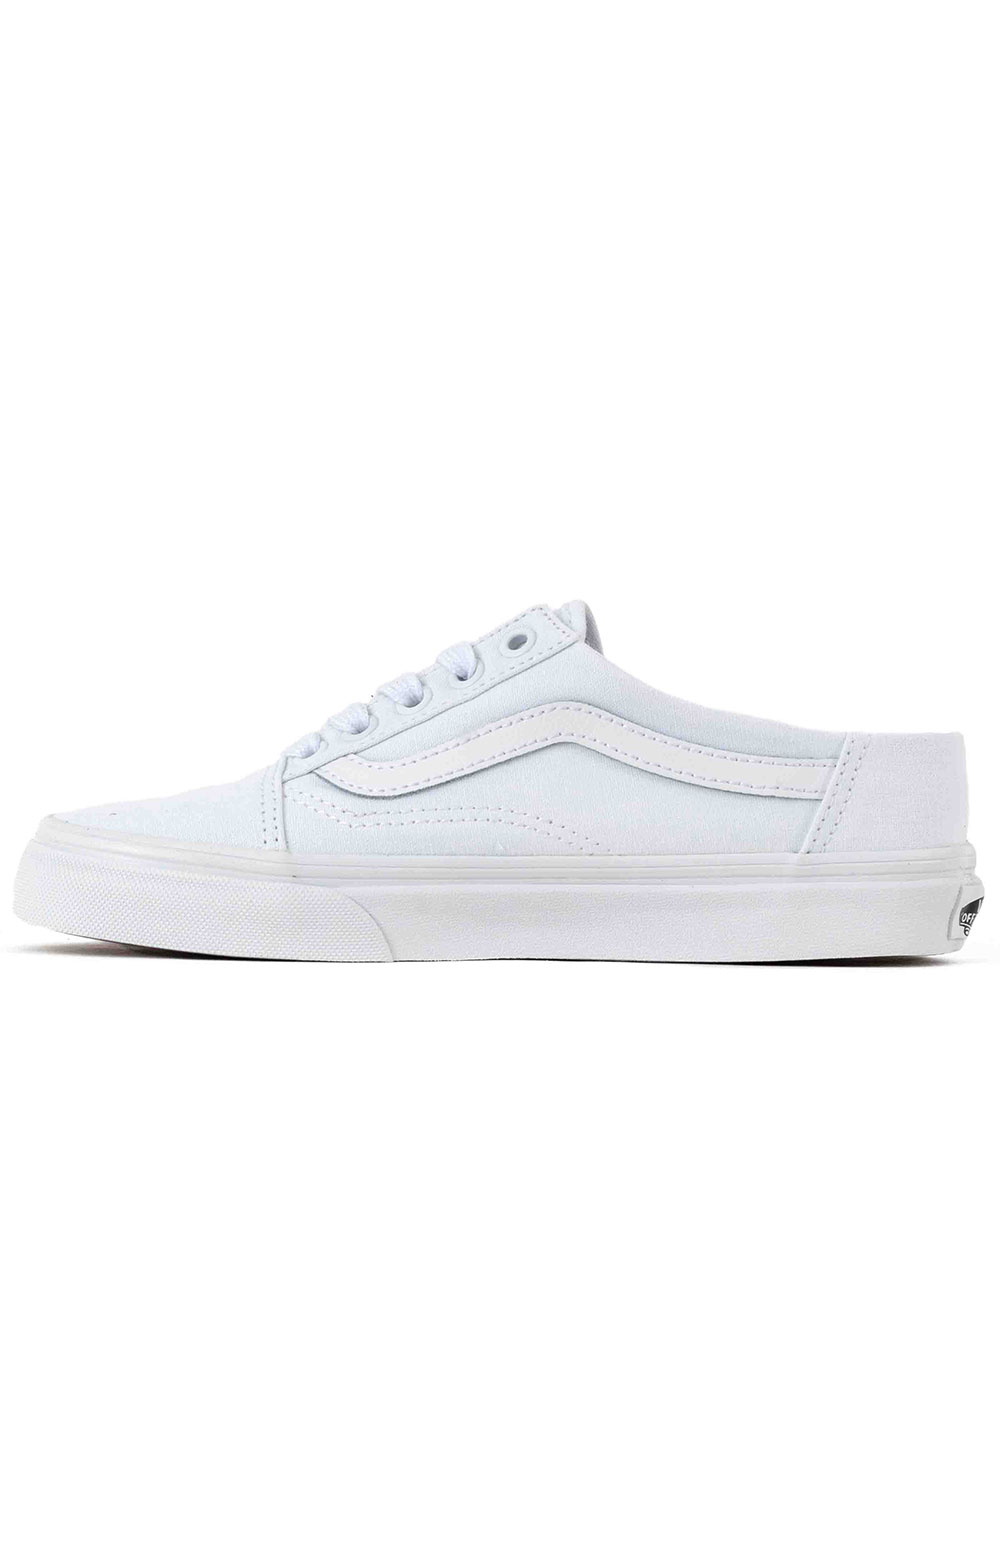 (P3YWC6) Old Skool Mule Shoe - White/True White 4